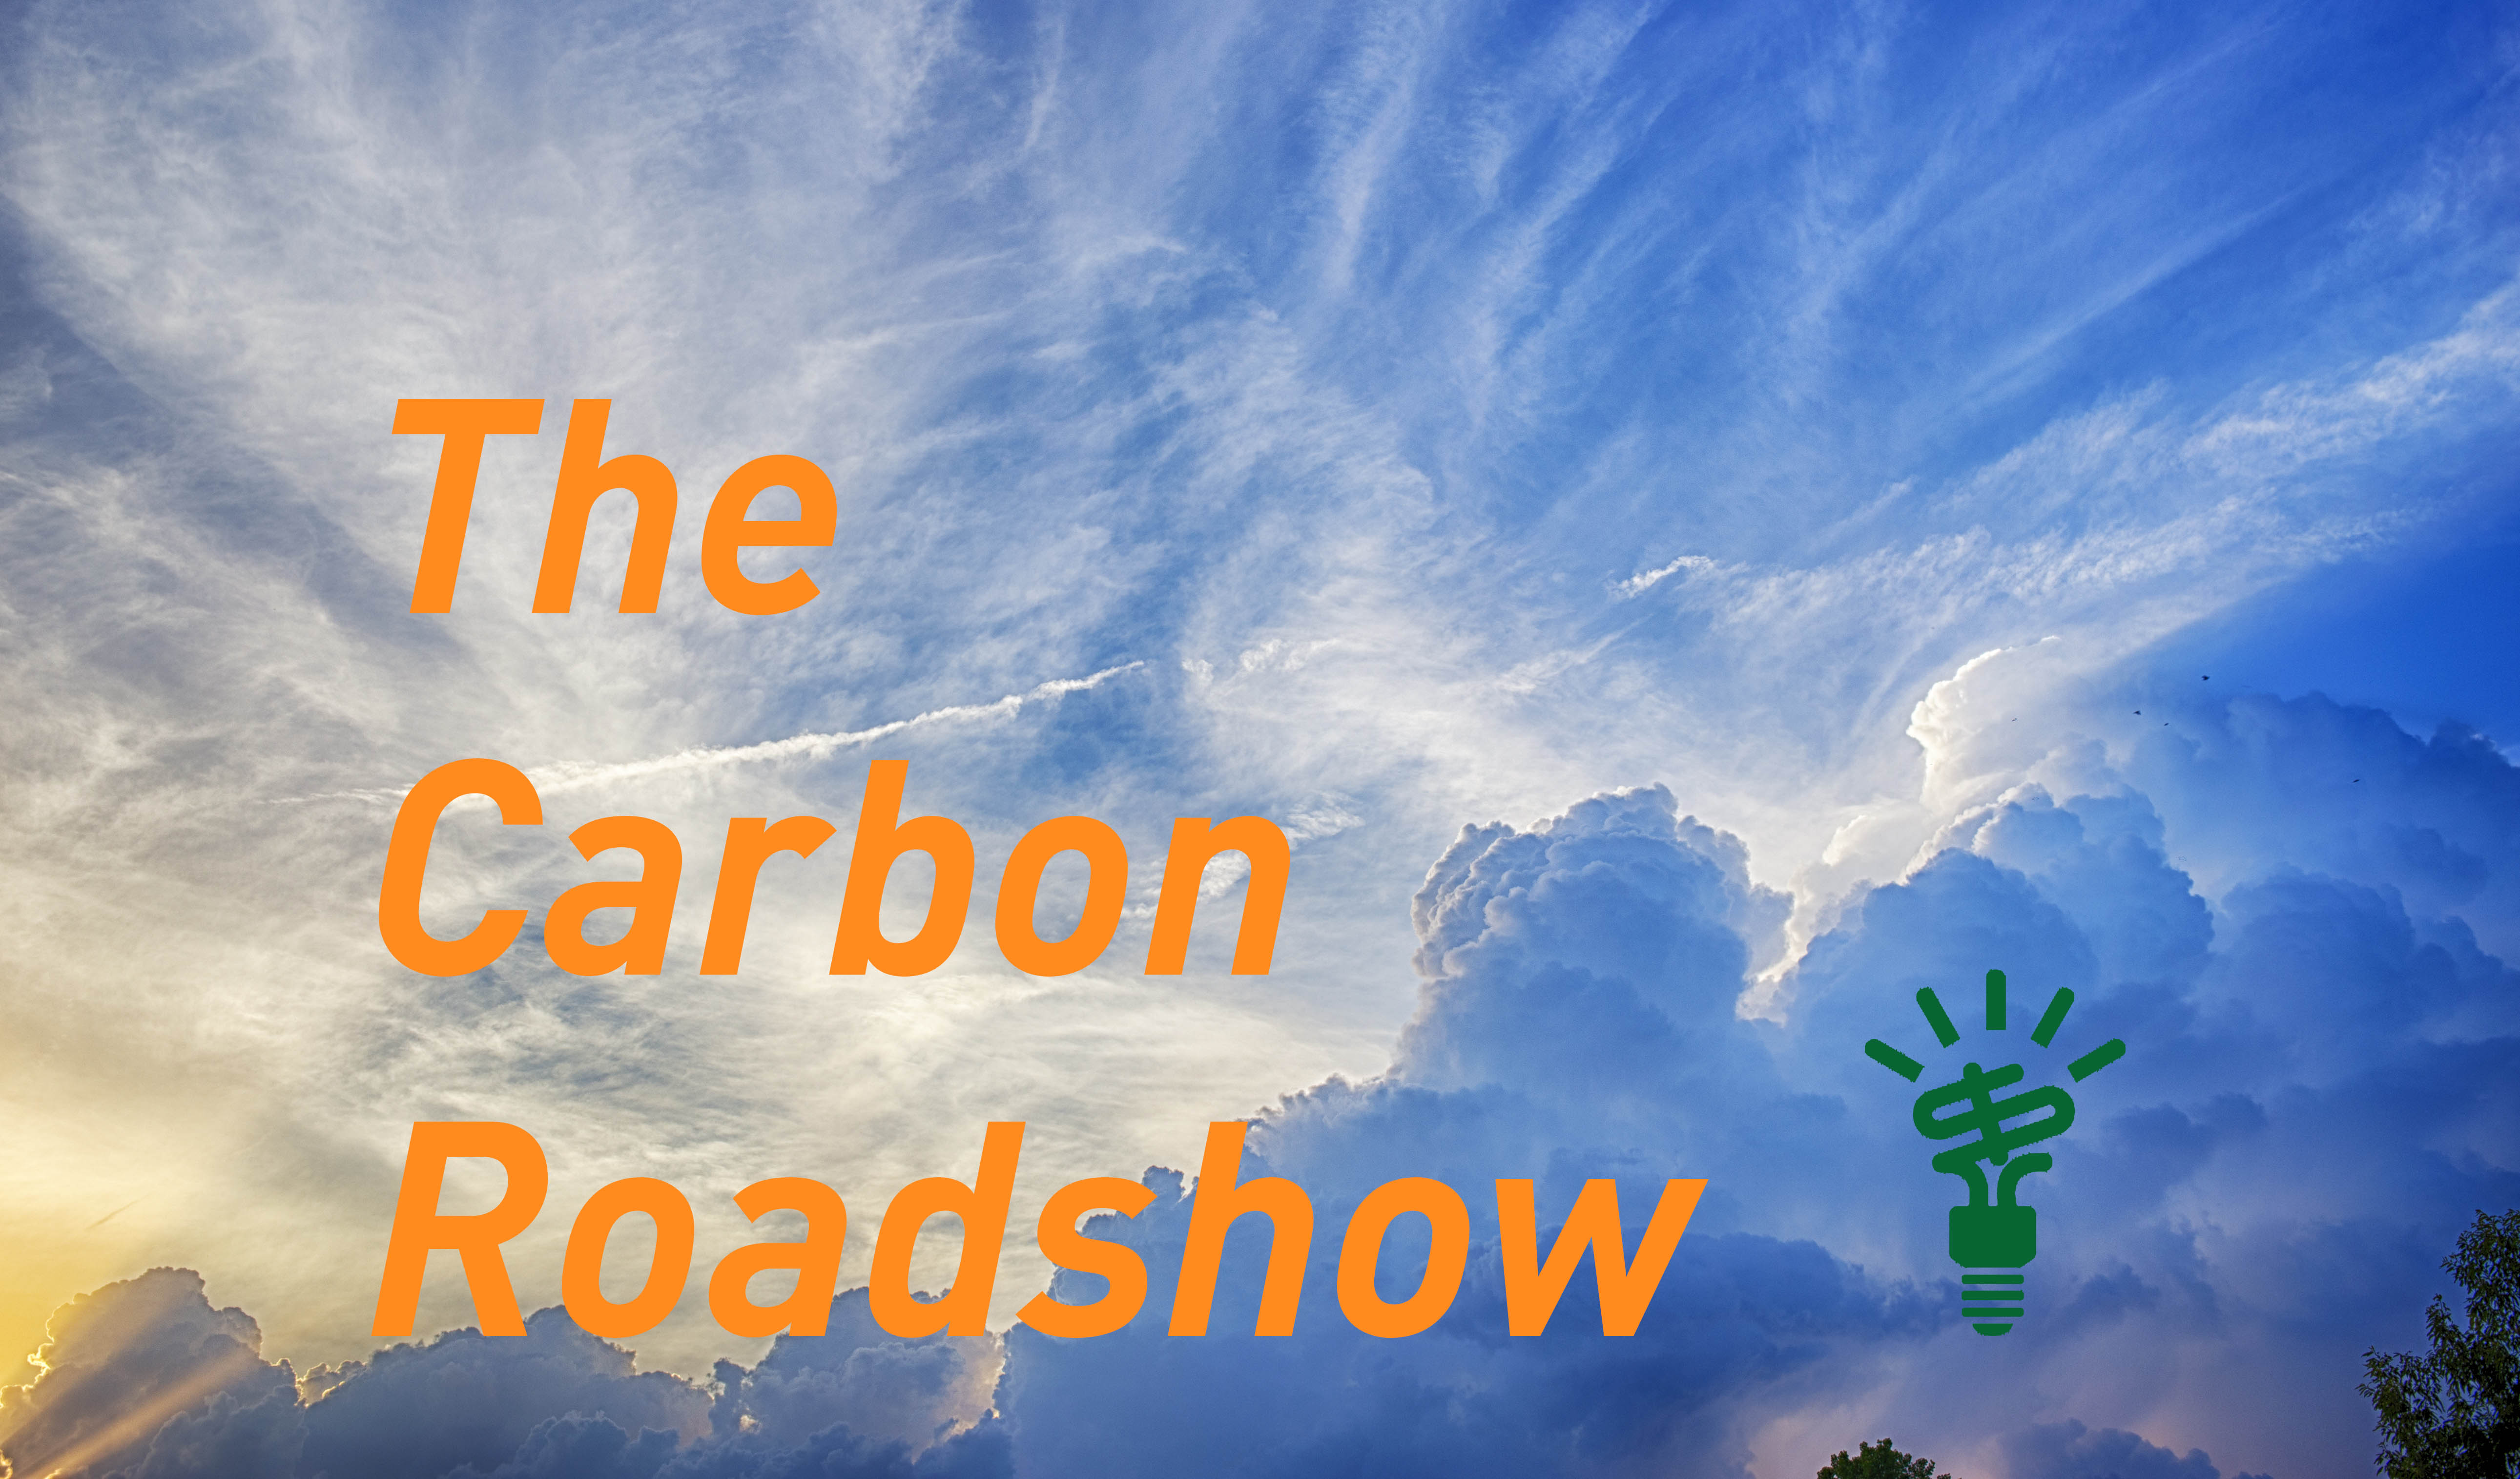 Carbon Roadshow